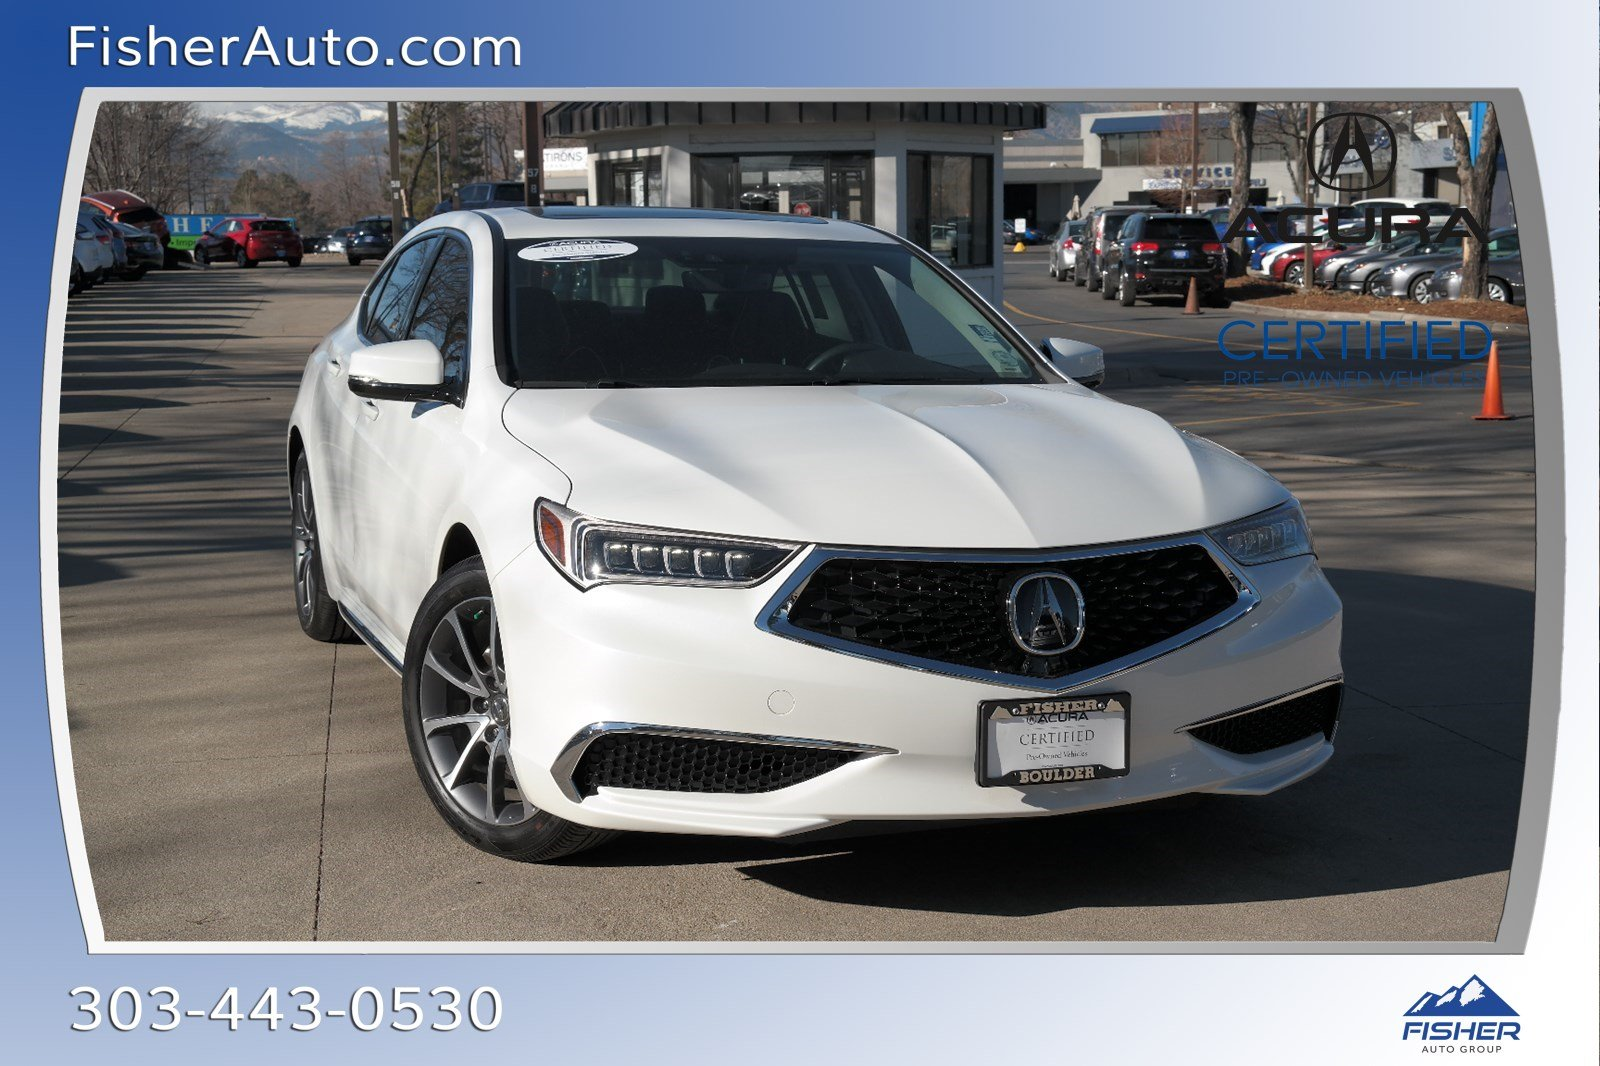 Certified Pre-Owned 2018 Acura TLX 3.5L SH-AWD w/Technology Pkg